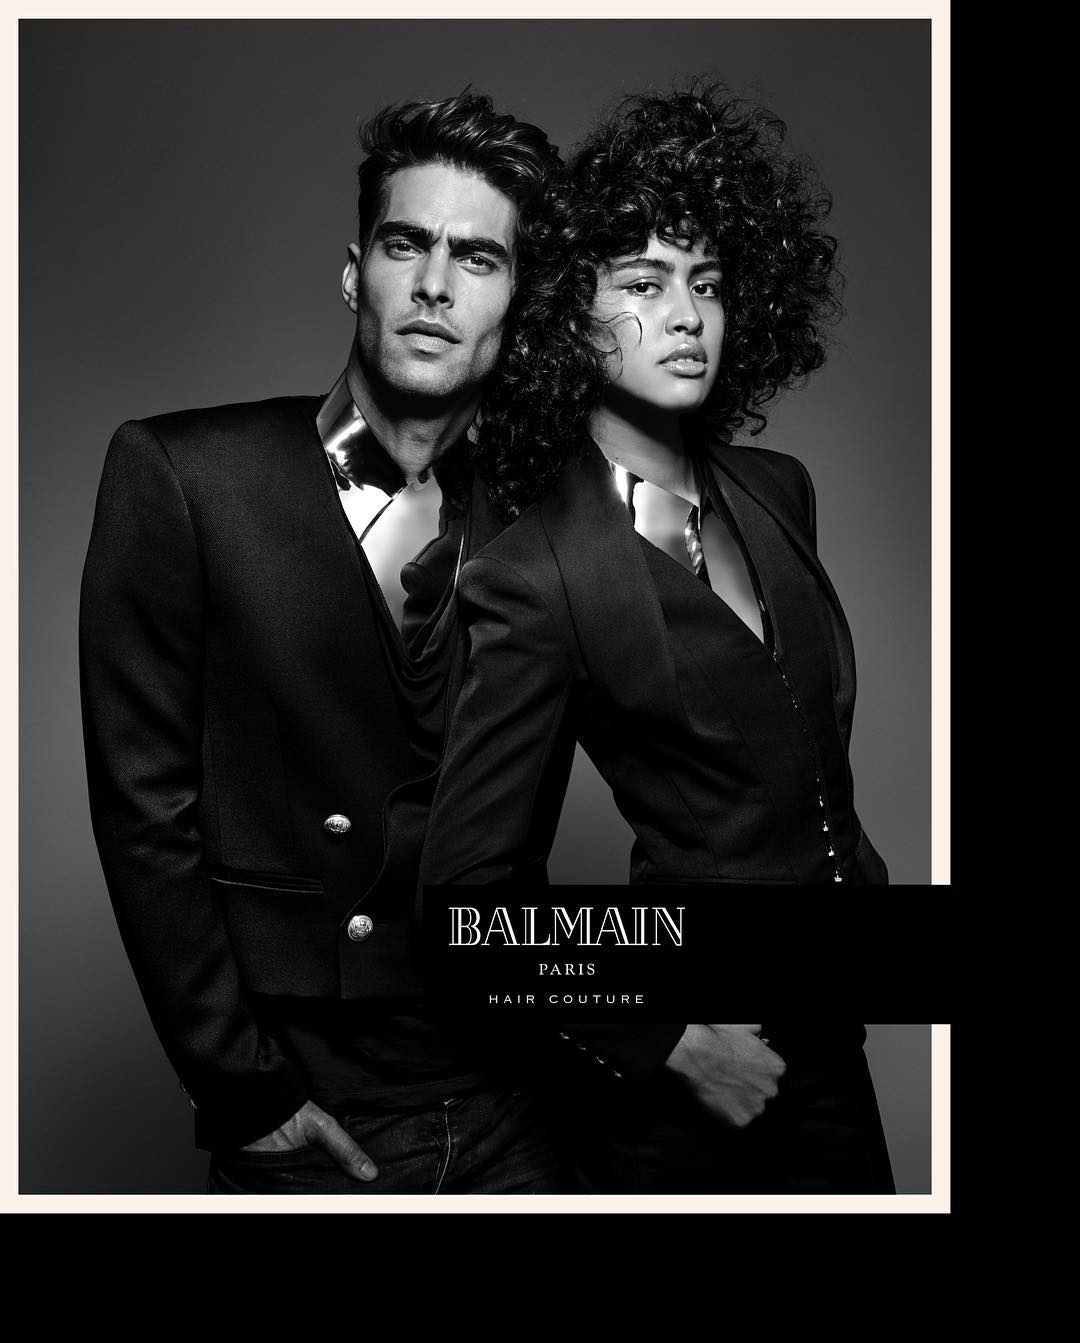 Luz Pavon for Balmain Hair Couture Spring 2017 campaign